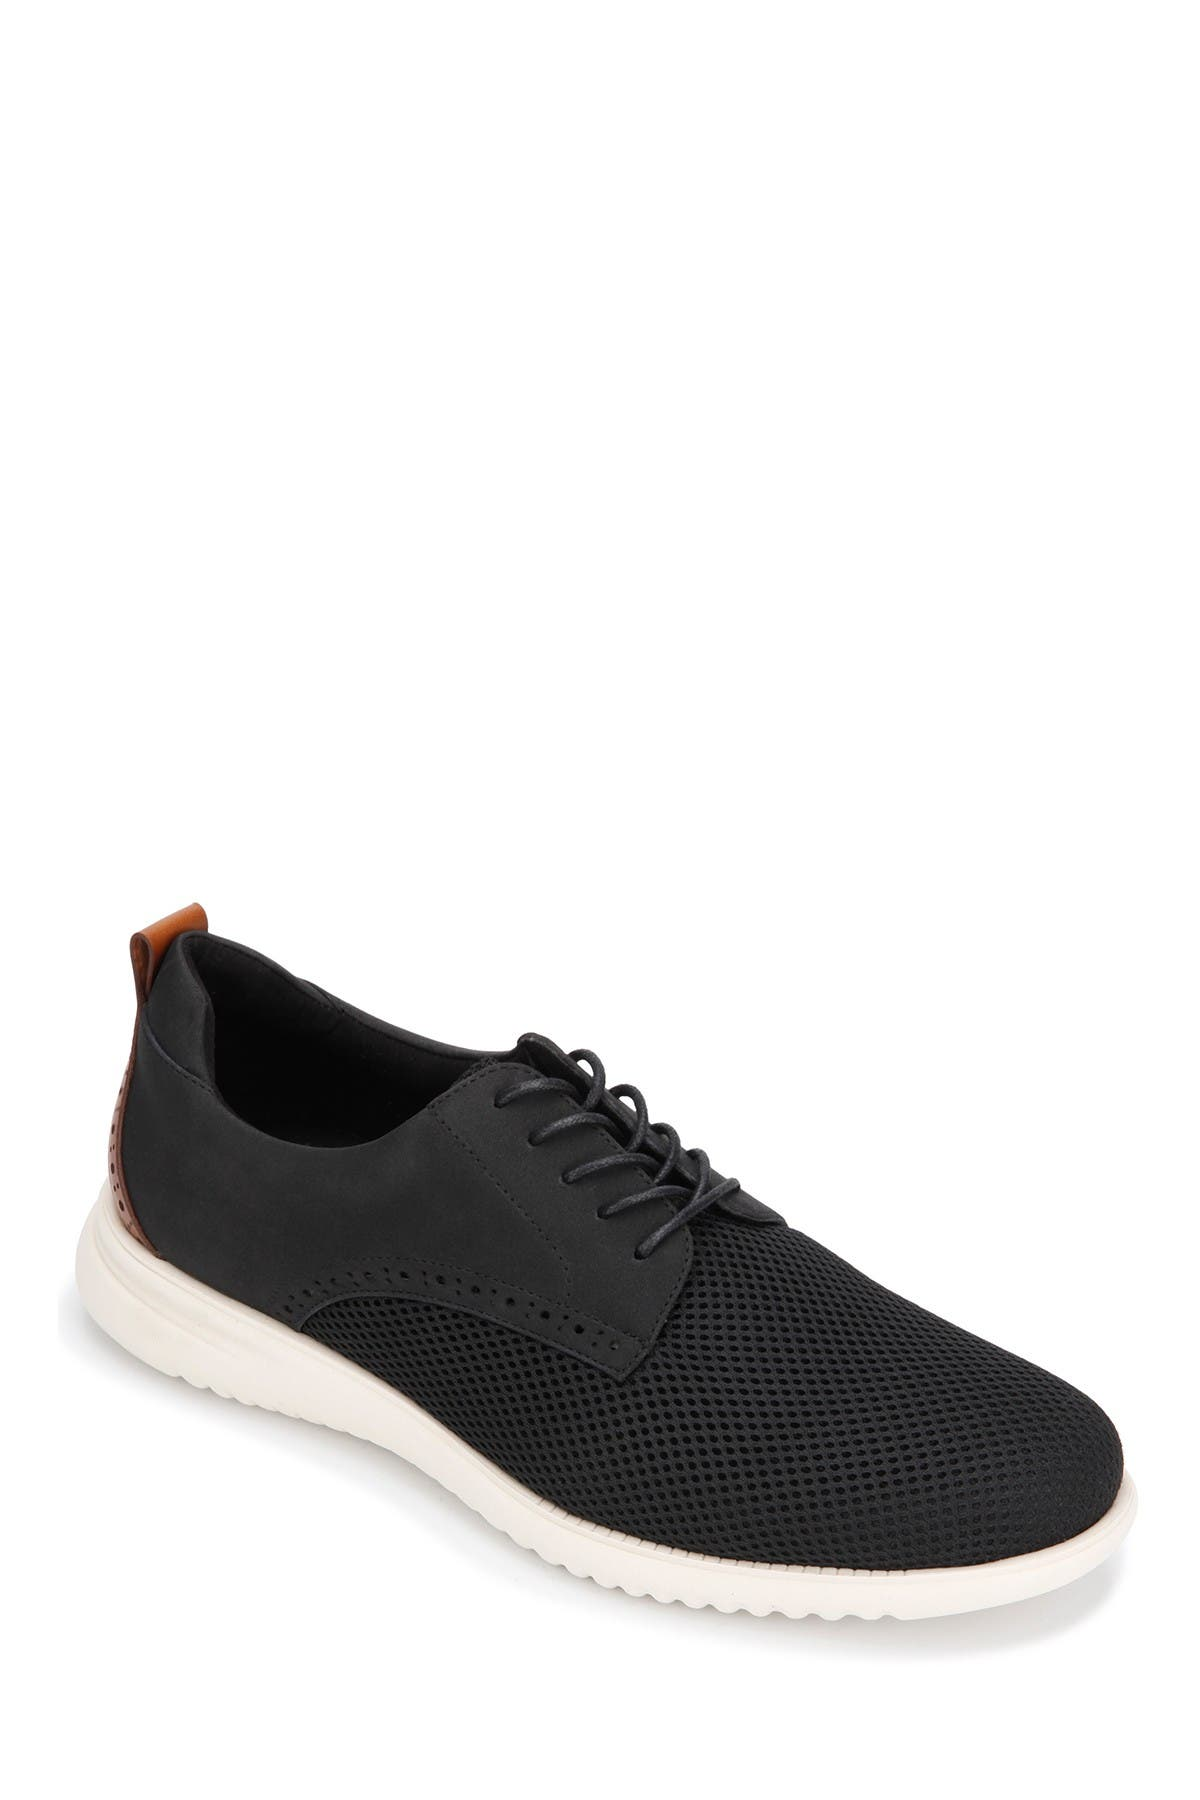 Image of Kenneth Cole Reaction Nio Lace-Up Mesh Sneaker